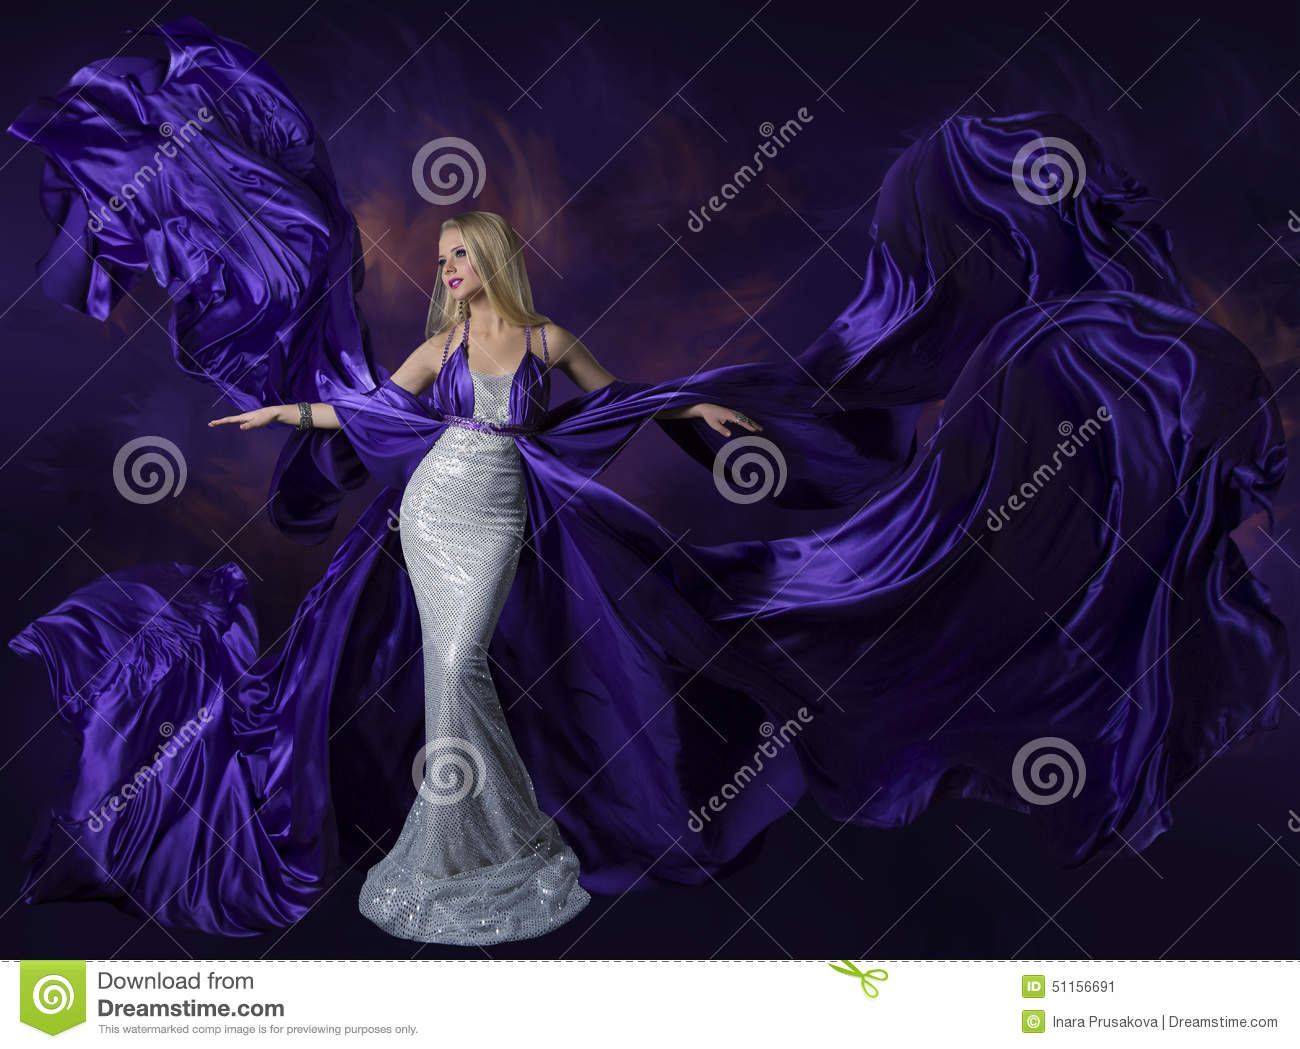 Woman Beauty Dress Flying Purple Silk Cloth, Lady Creative ...